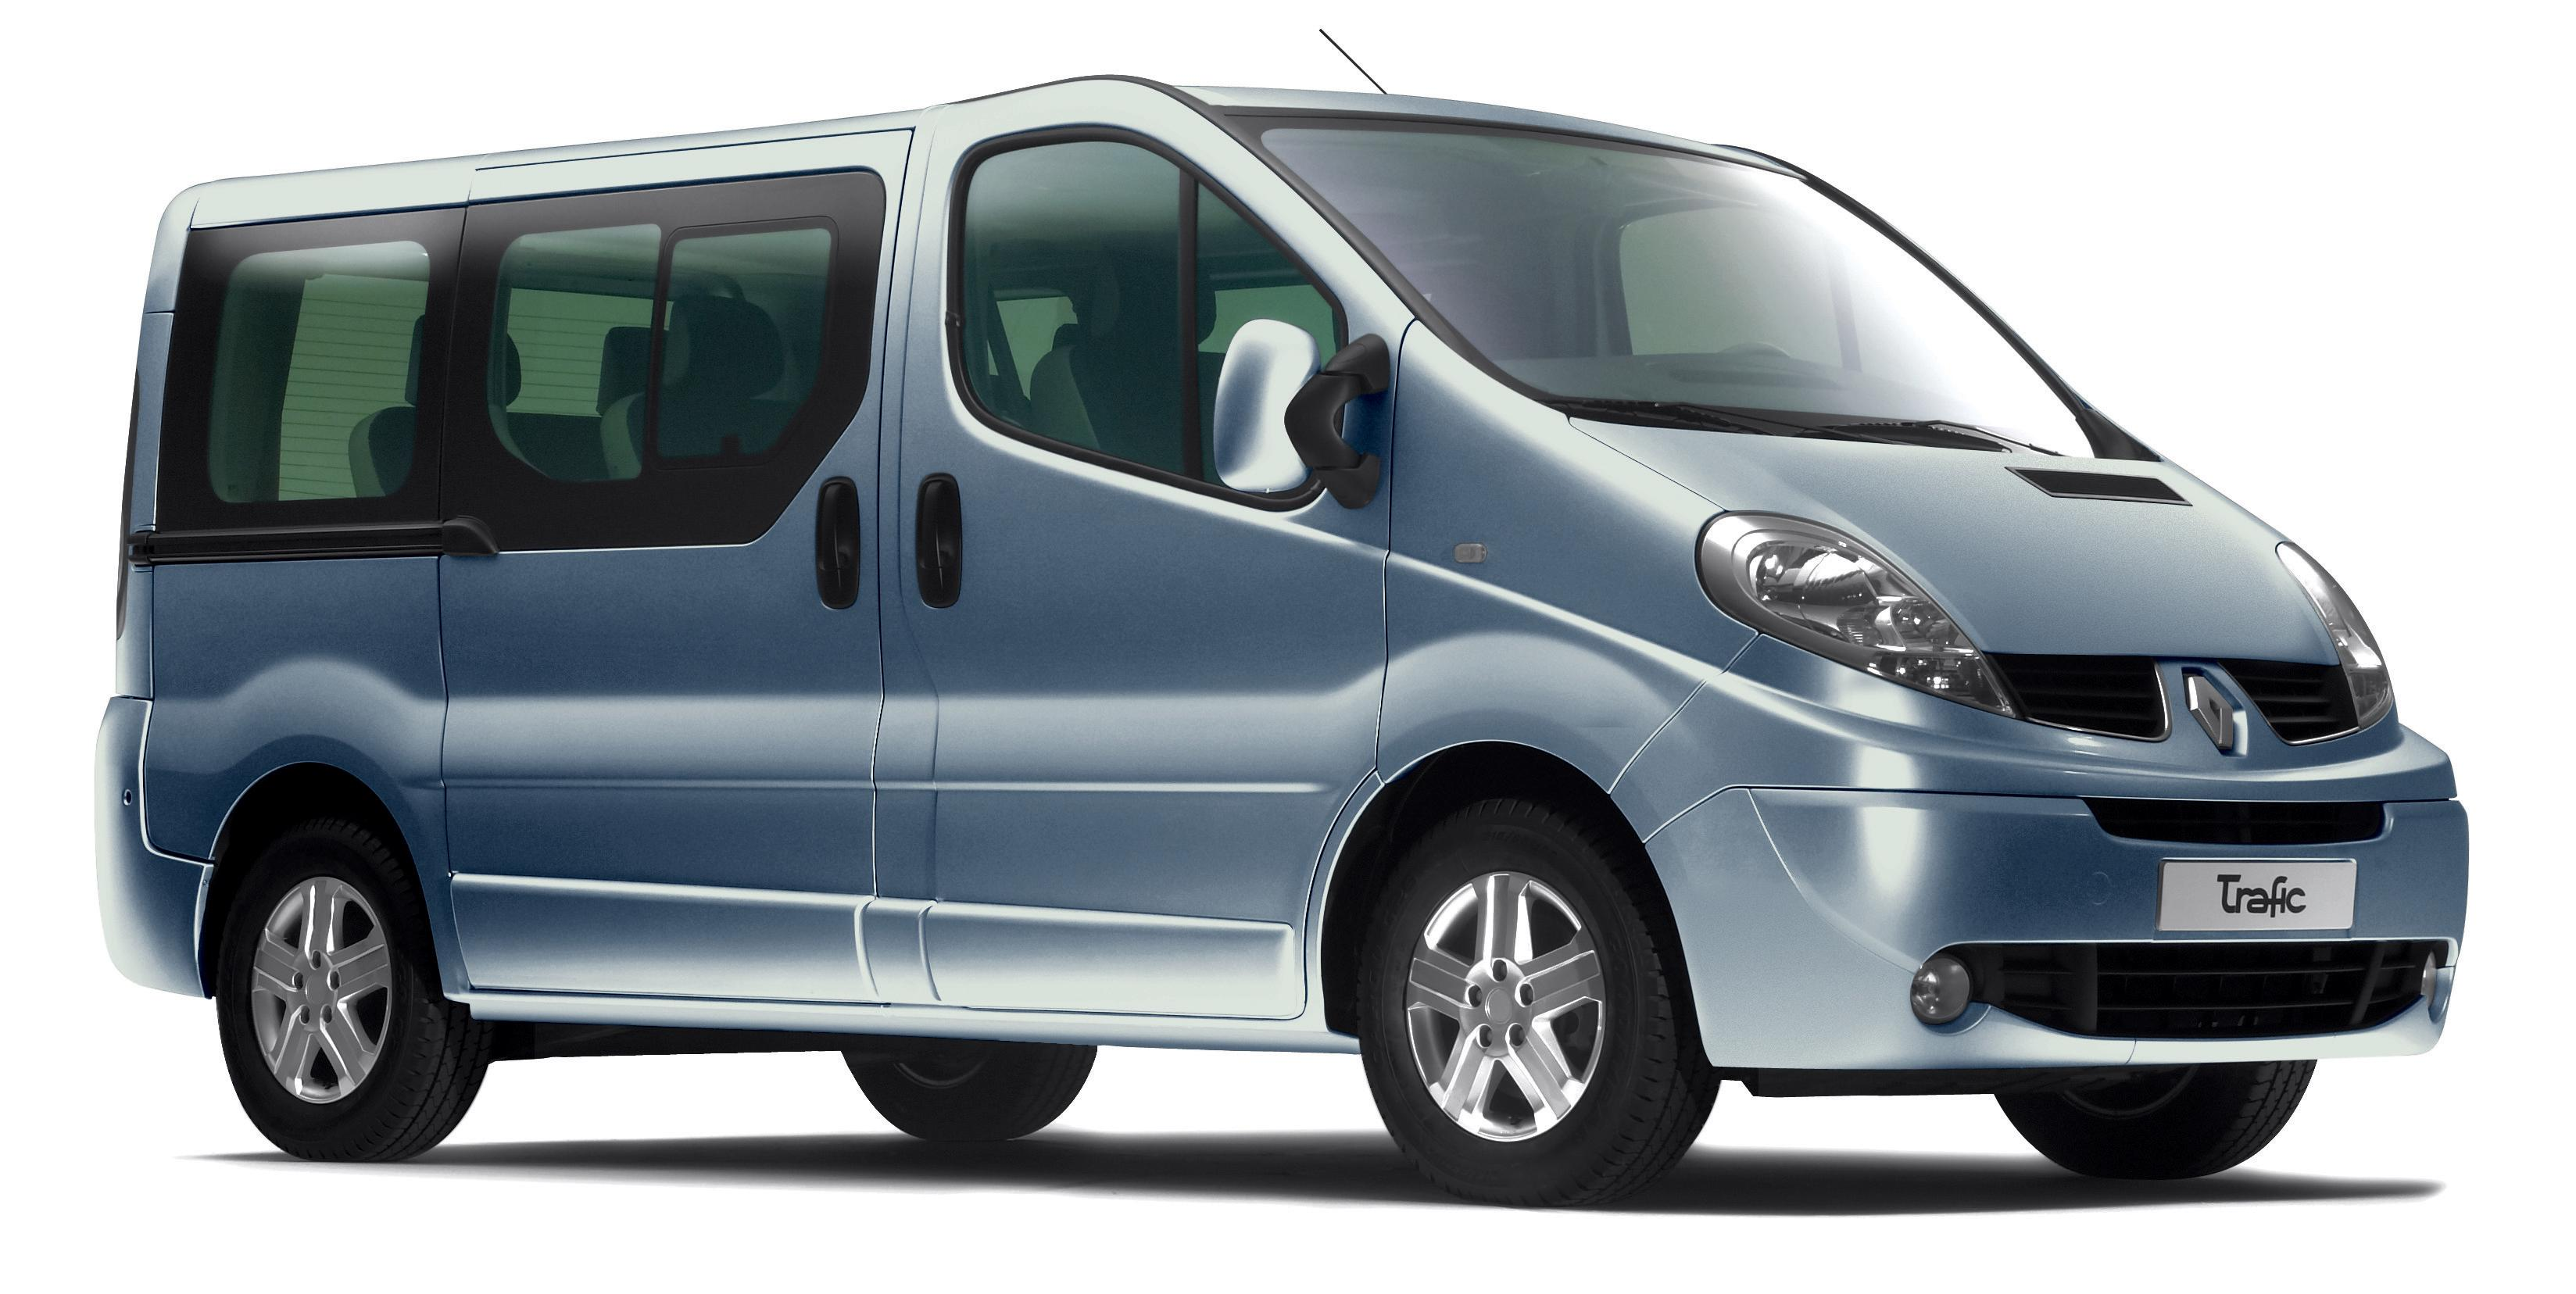 2011 renault trafic 2 pictures information and specs auto. Black Bedroom Furniture Sets. Home Design Ideas